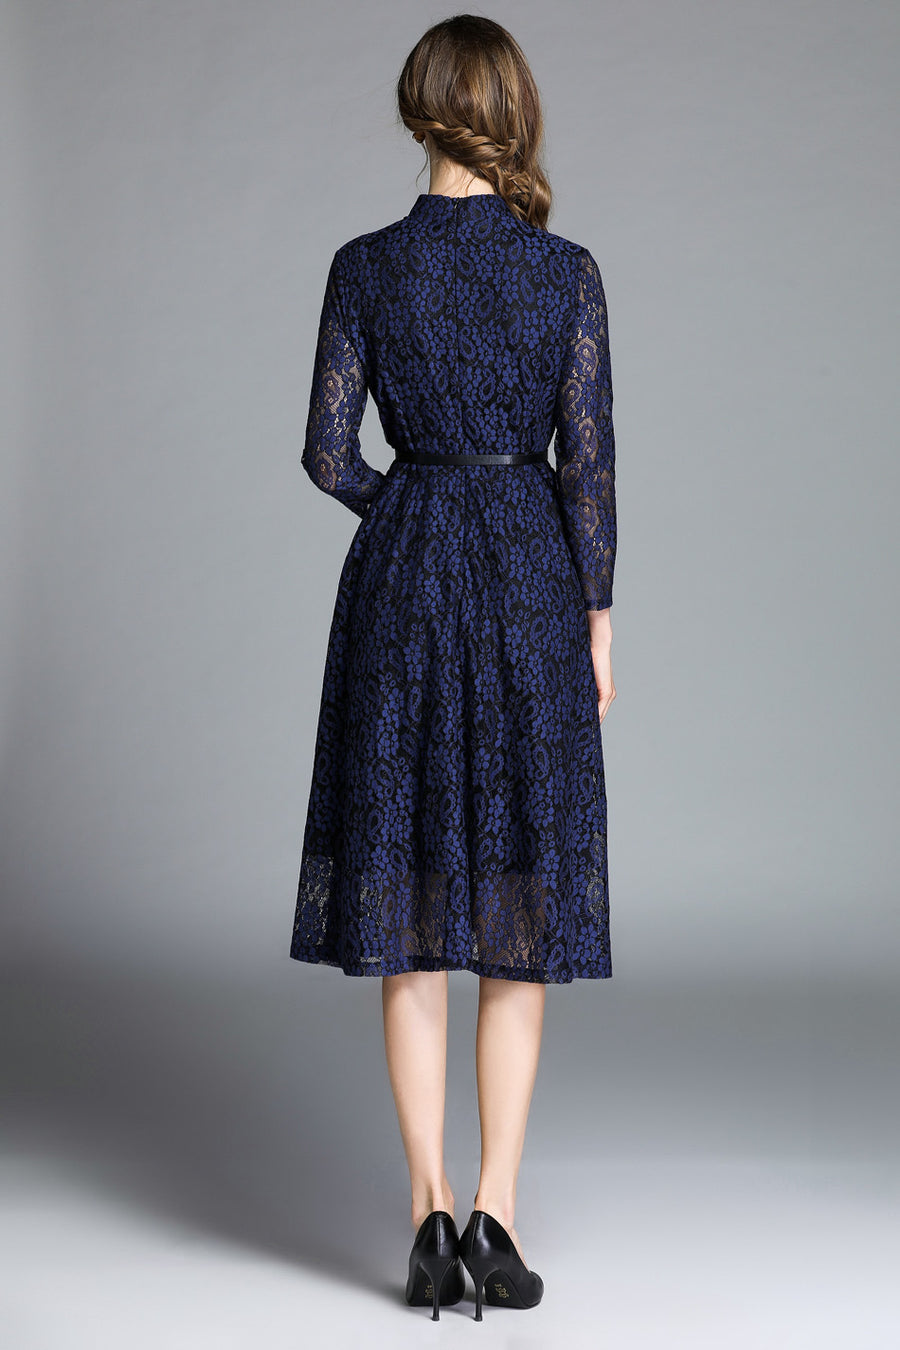 Blue Lace Floral Hollow Out Midi Dress with Buttons Front Decoration